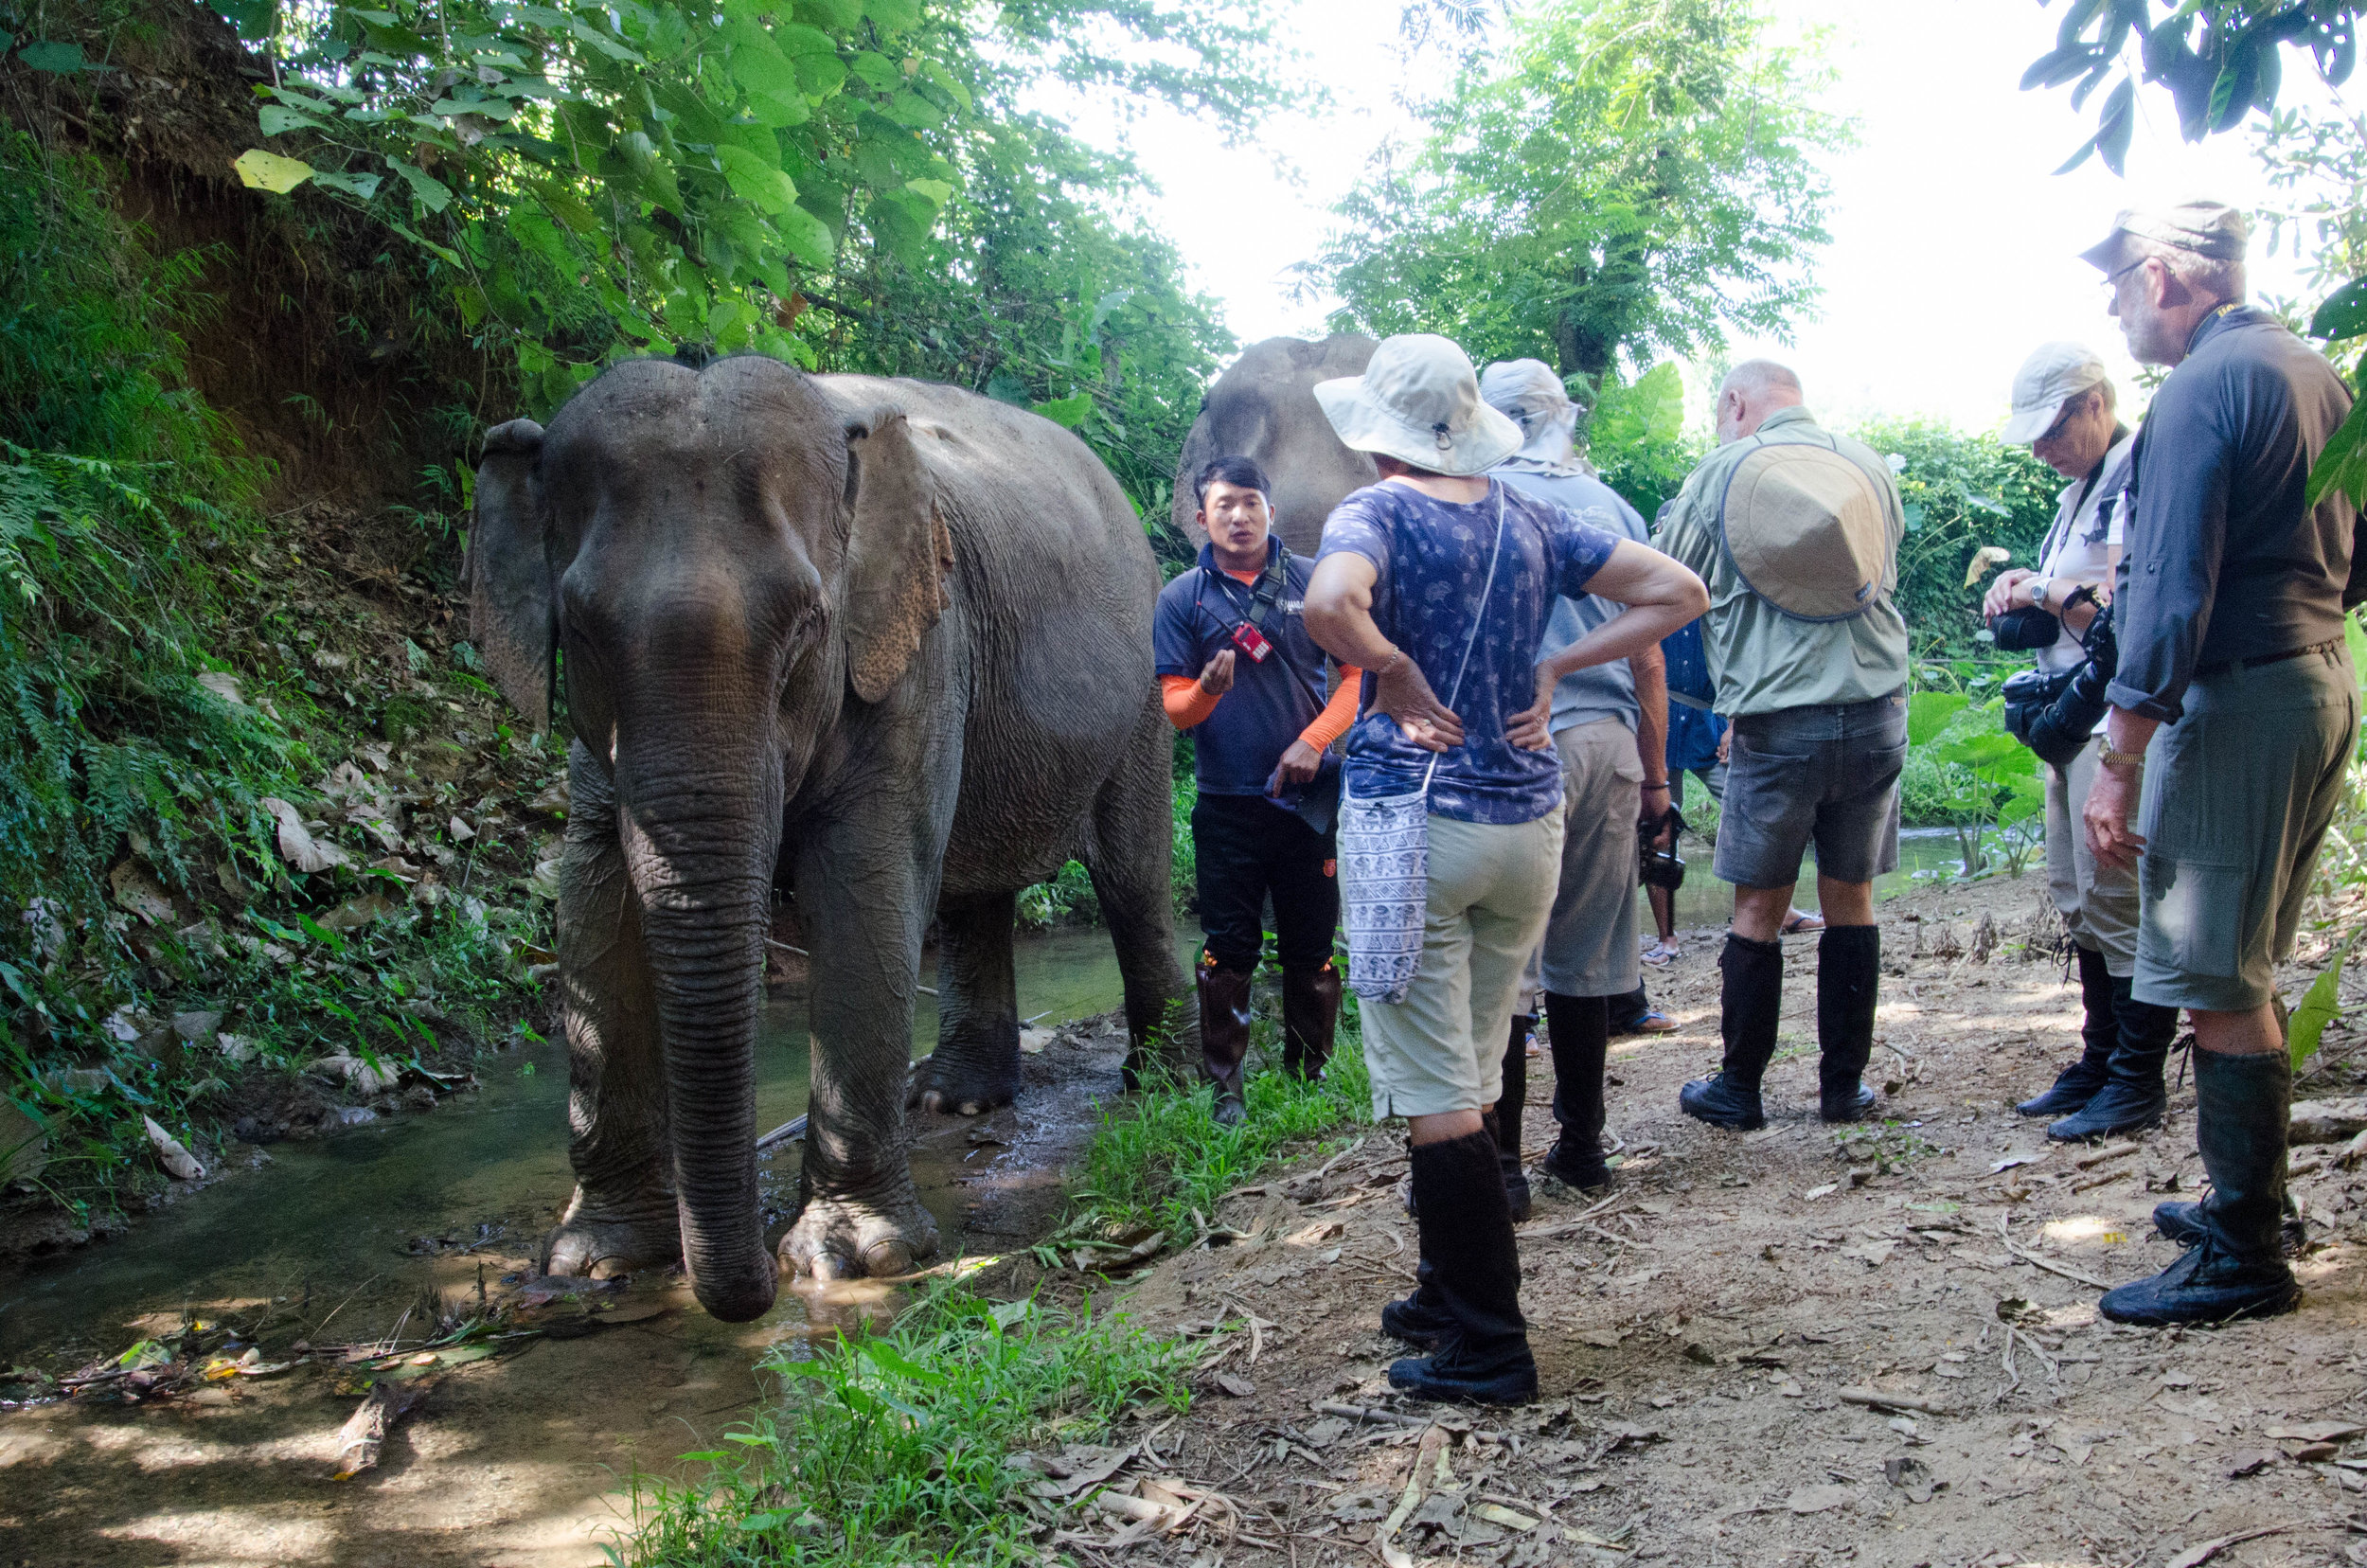 Group with elephants, MandaLoa Elephant Conservation Park, Laos, 2 Dec 2017.jpg